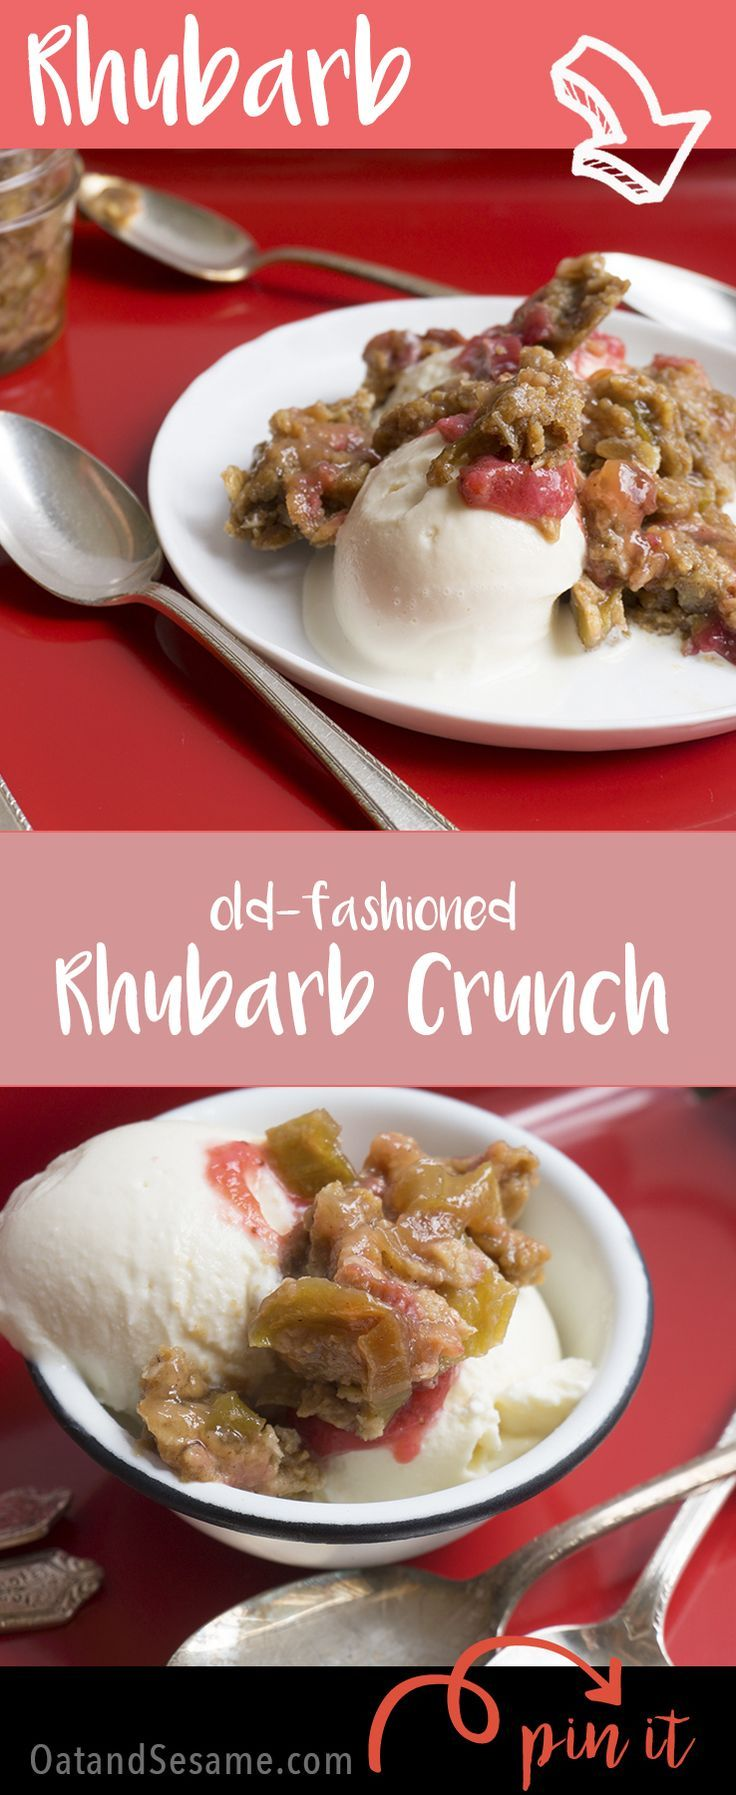 Old-Fashioned Rhubarb Crunch - a family recipe that's great over ice cream! | Recipe at OatandSesame.com